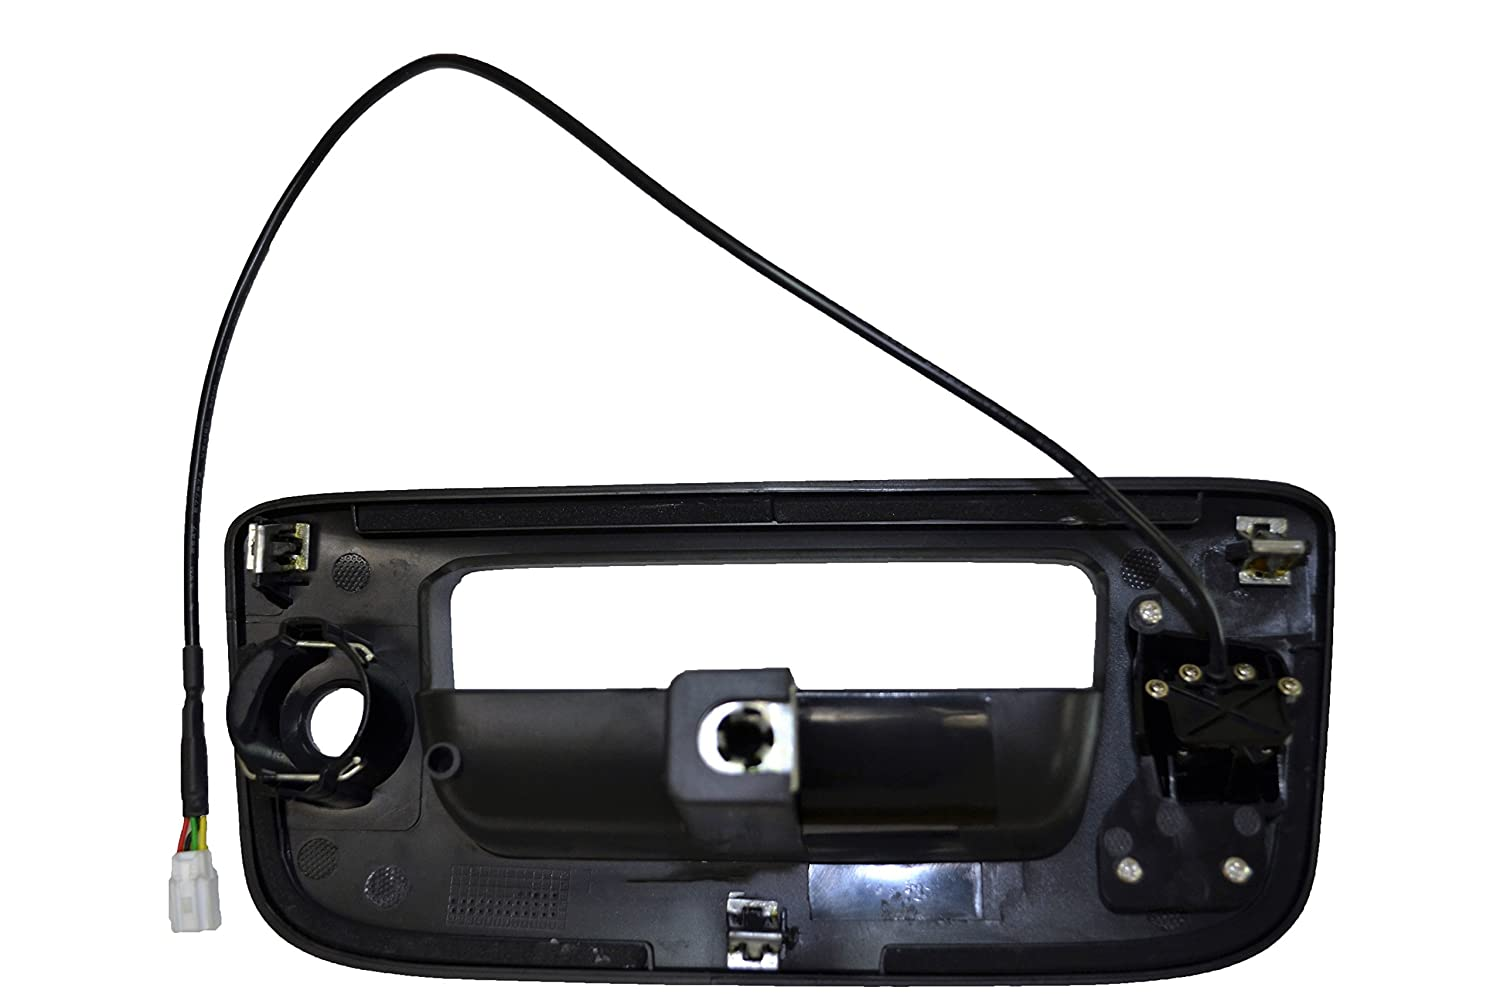 PT Auto Warehouse GM-3547A-BZCX Textured Black Tailgate Handle Bezel Trim Cover with Camera